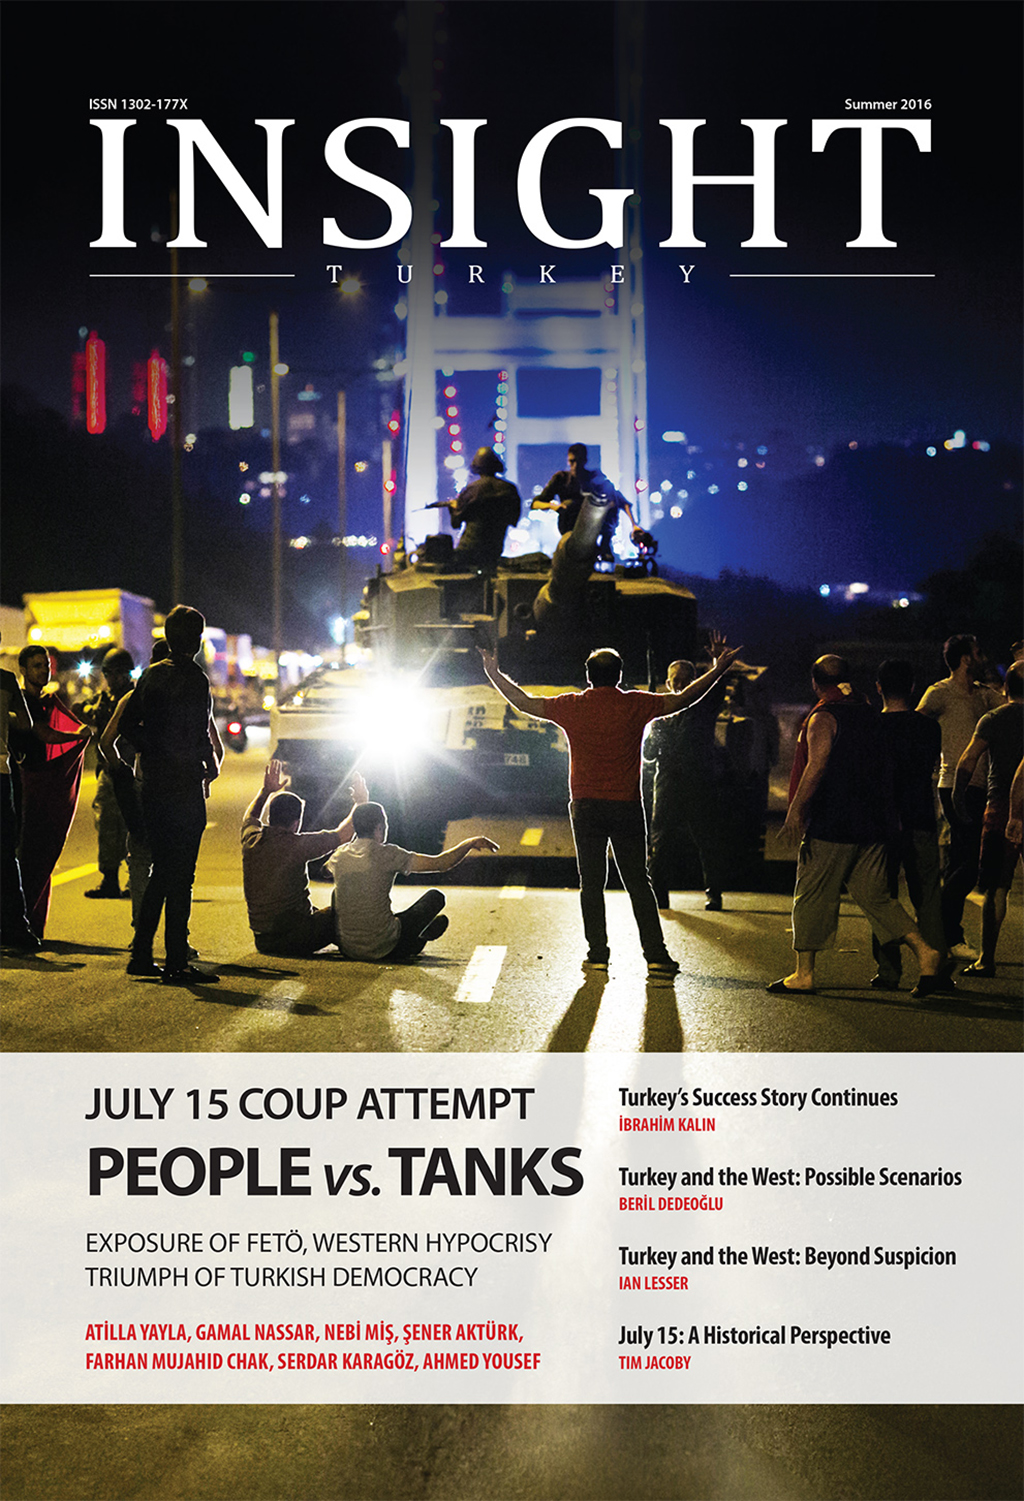 July 15 Coup Attempt People vs Tanks